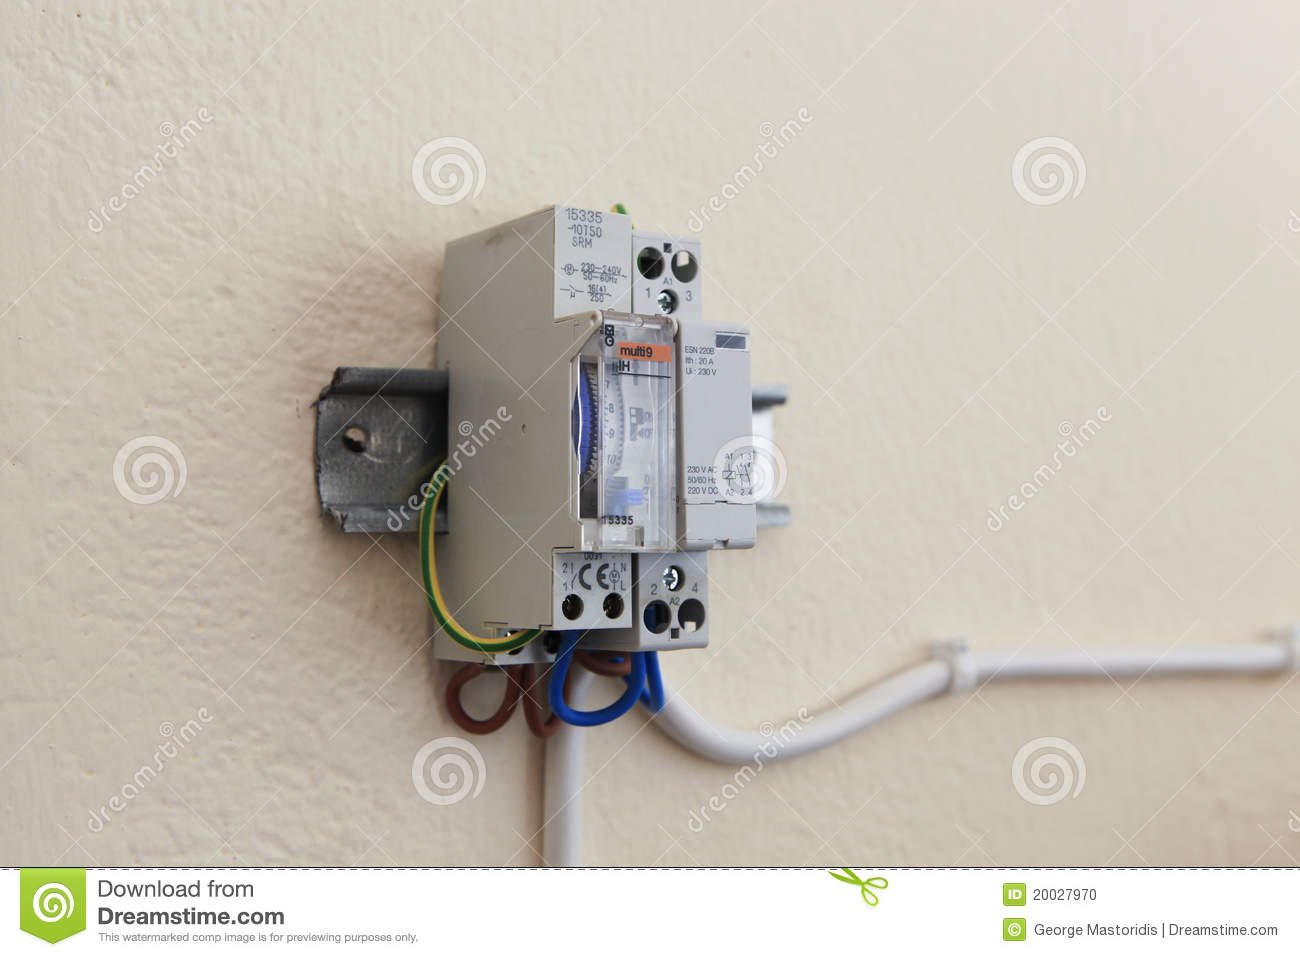 Fuse Box Switch Is Red : Fuse box timer switch wiring diagram images